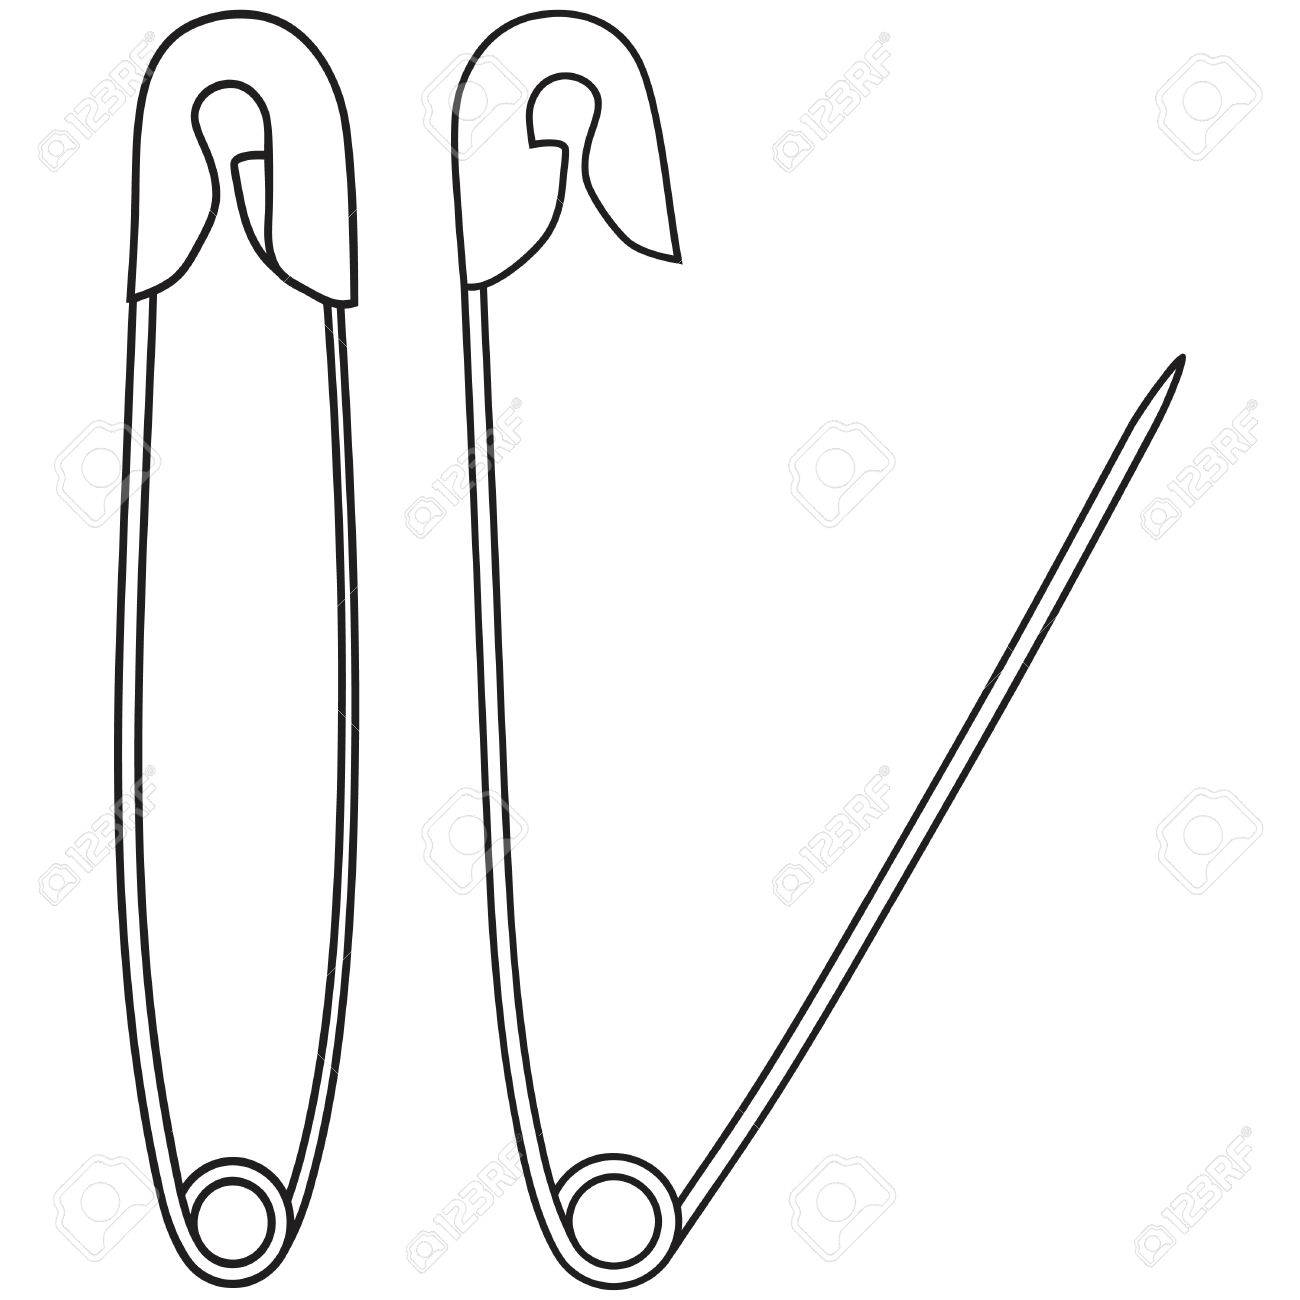 Set of opened and closed safety pins.